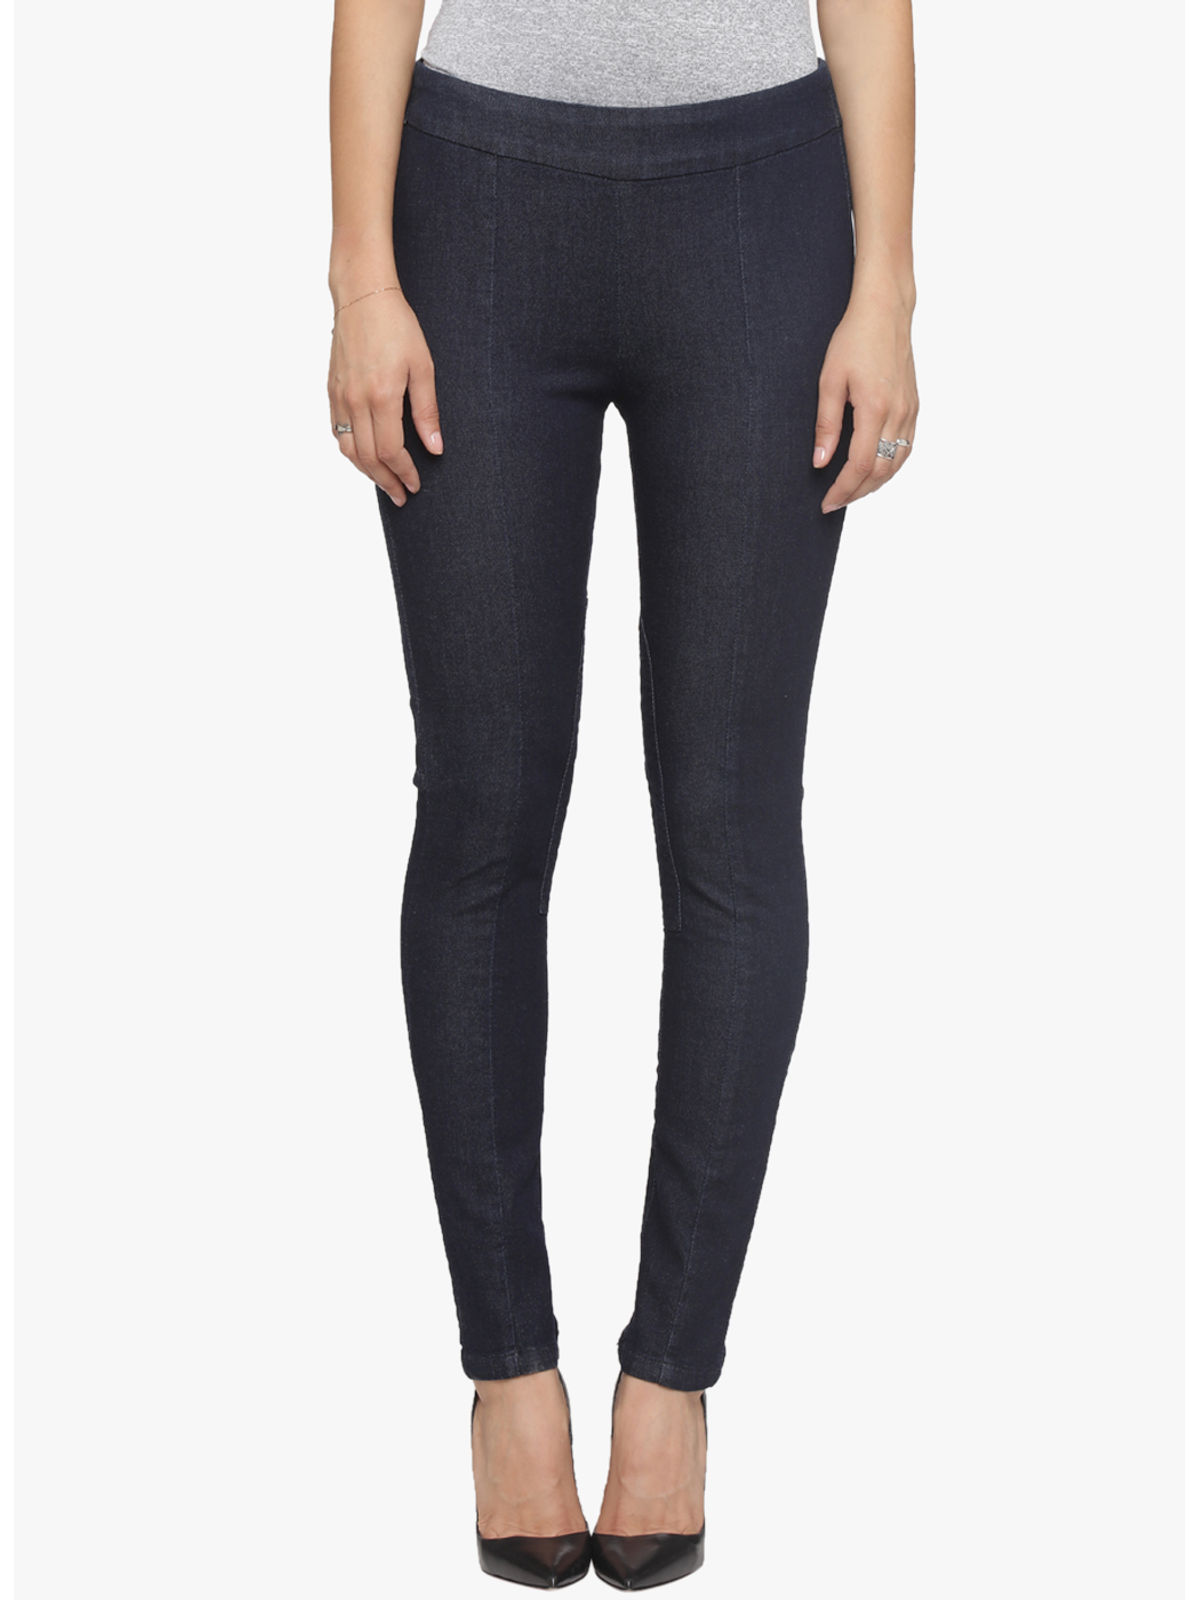 ETHAN TAILORED SKINNY TROUSER